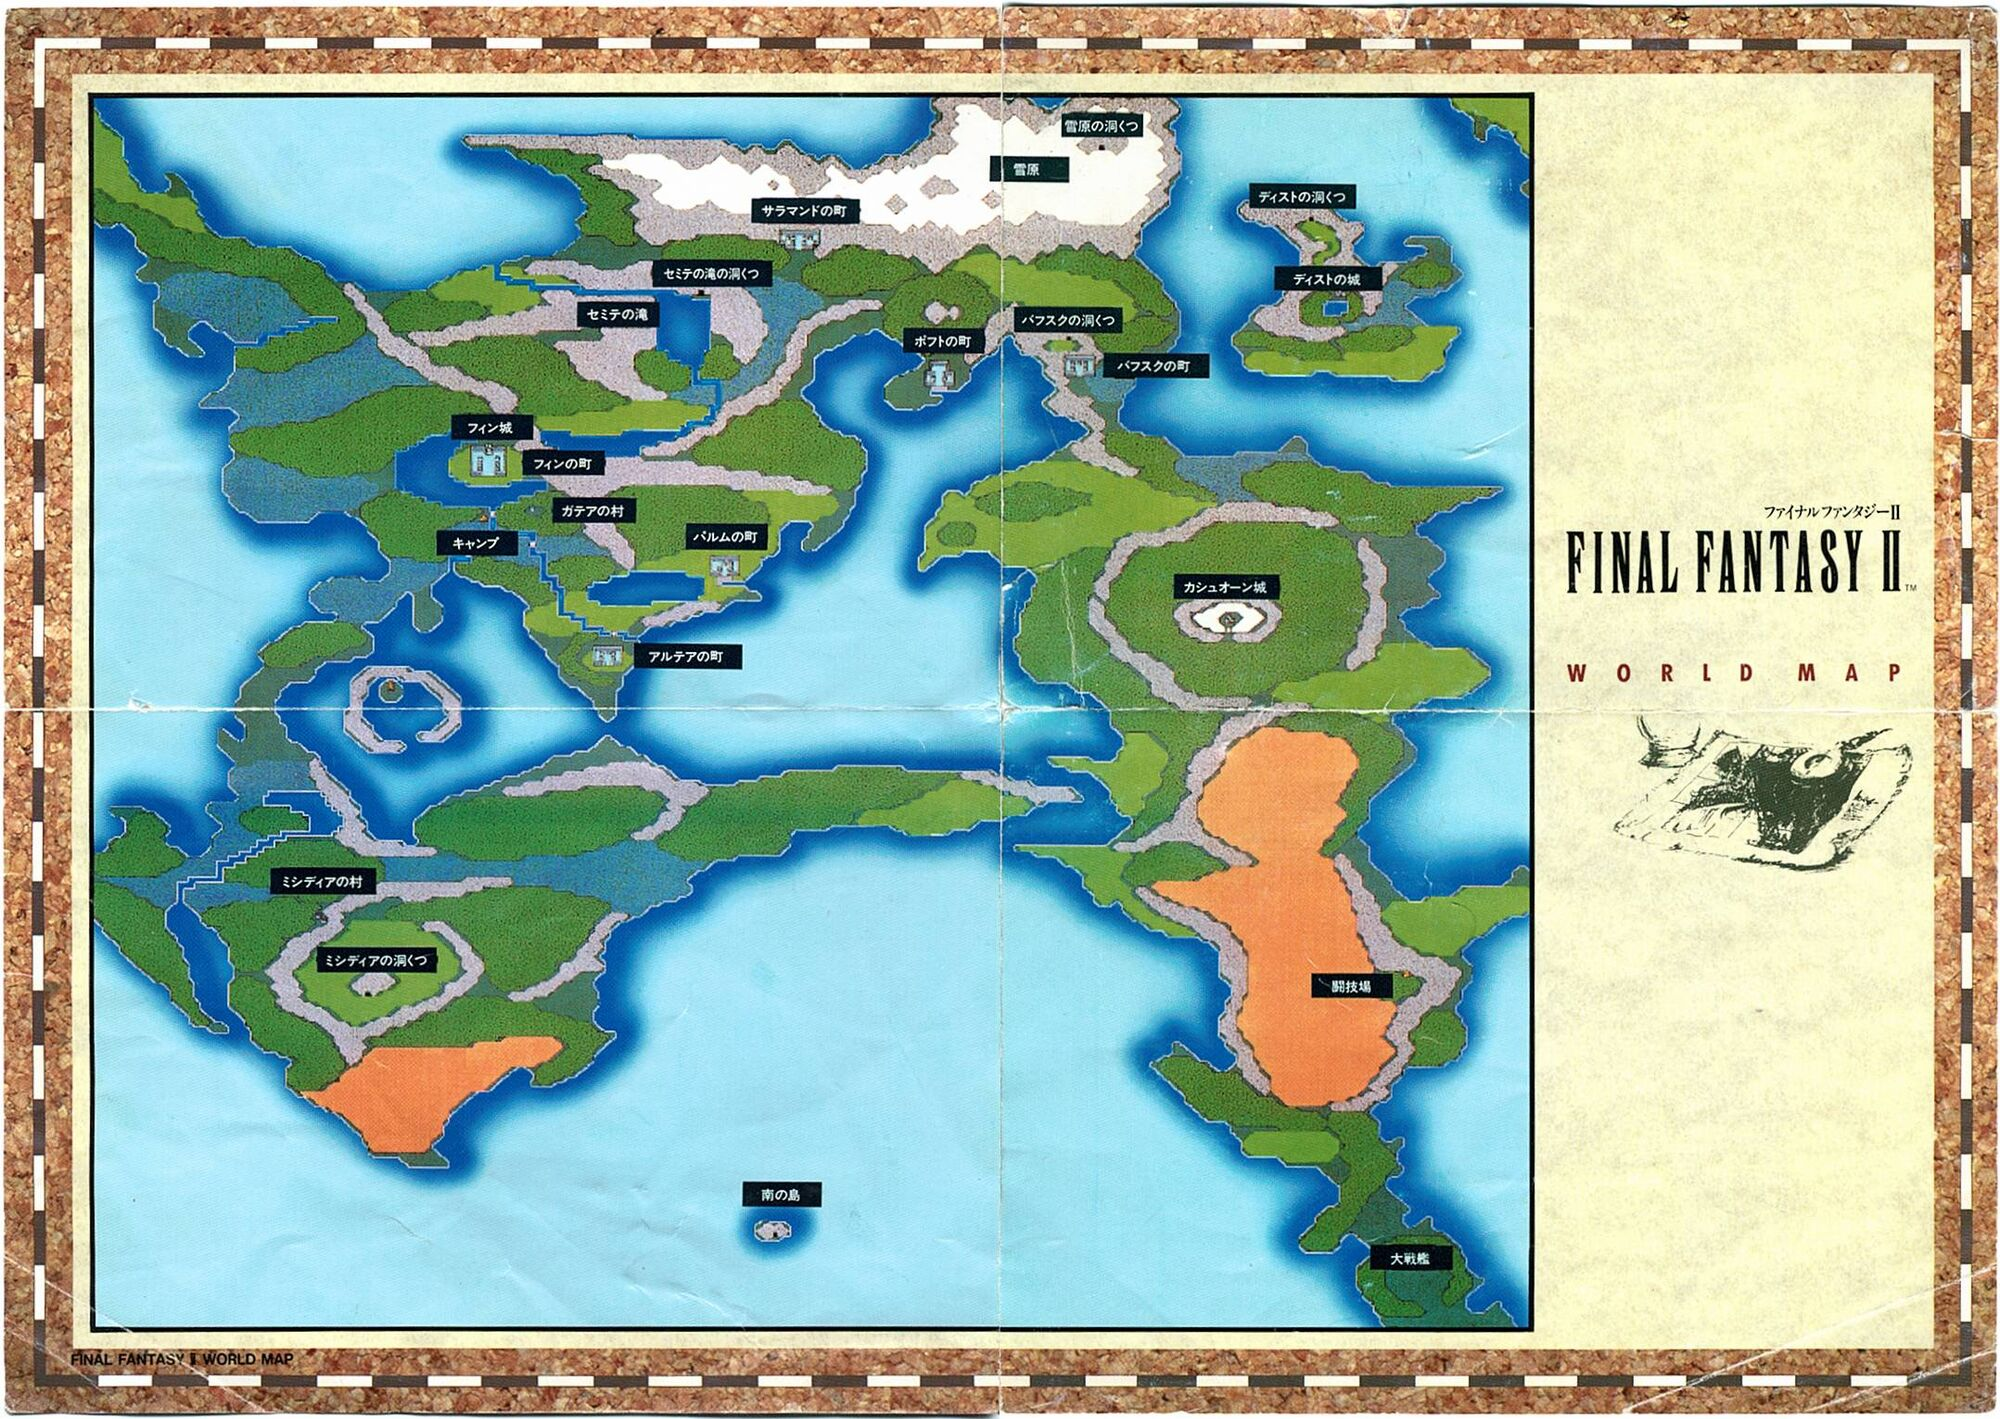 List of Final Fantasy II locations | Final Fantasy Wiki | FANDOM ...